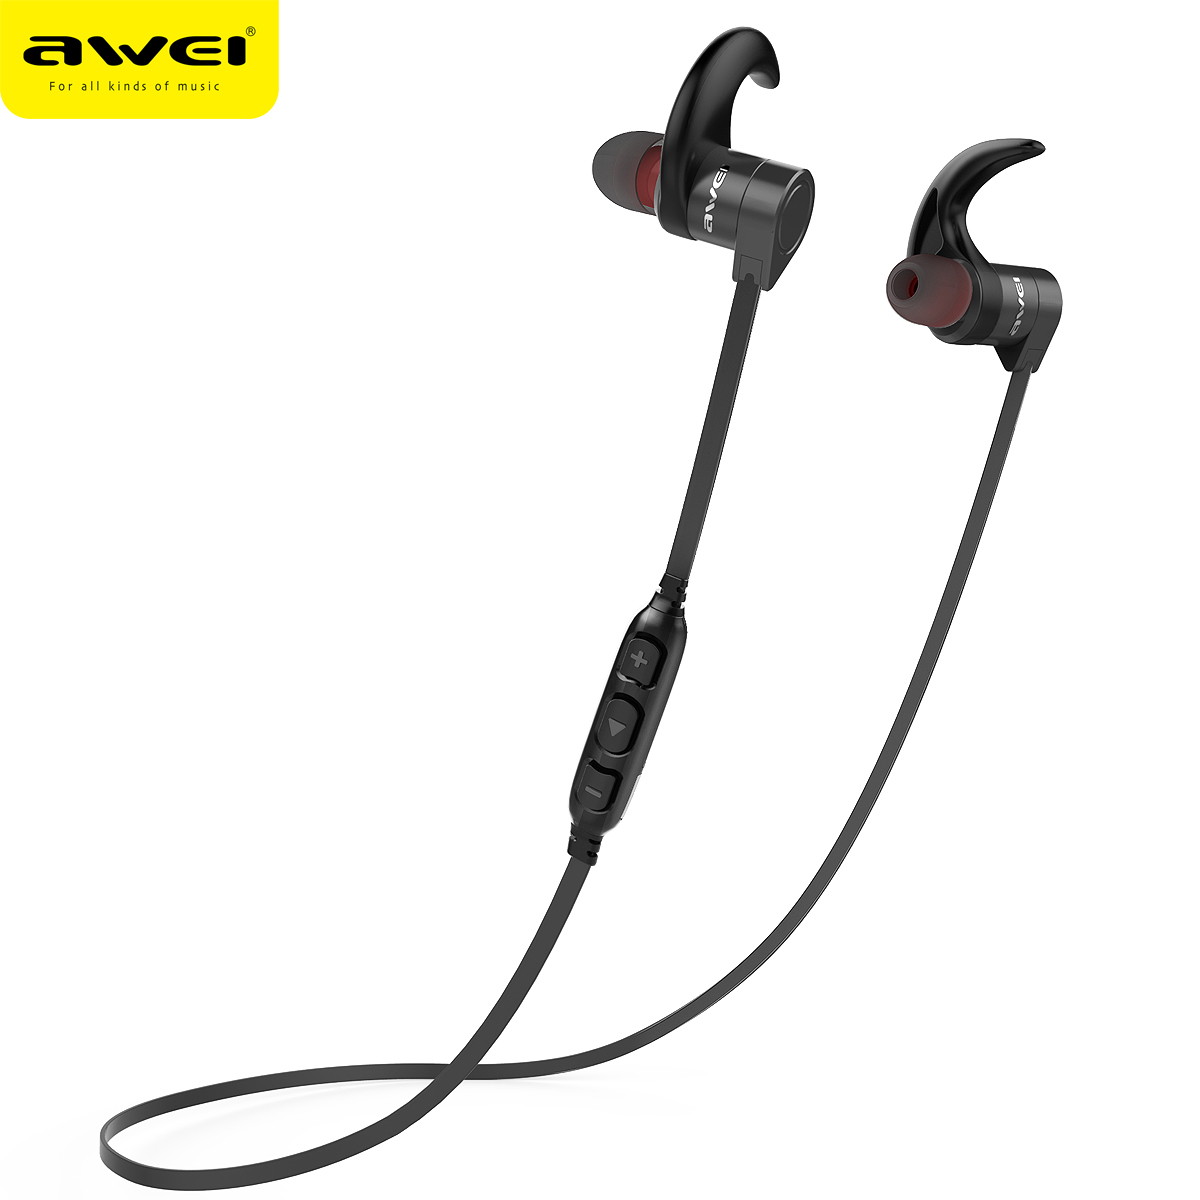 AWEI AK3 <font><b>Bluetooth</b></font> Earphone IPX4 Waterproof Wireless Headset Casque With Microphone Cordless Earphone Earpiece Audifonos Earbuds